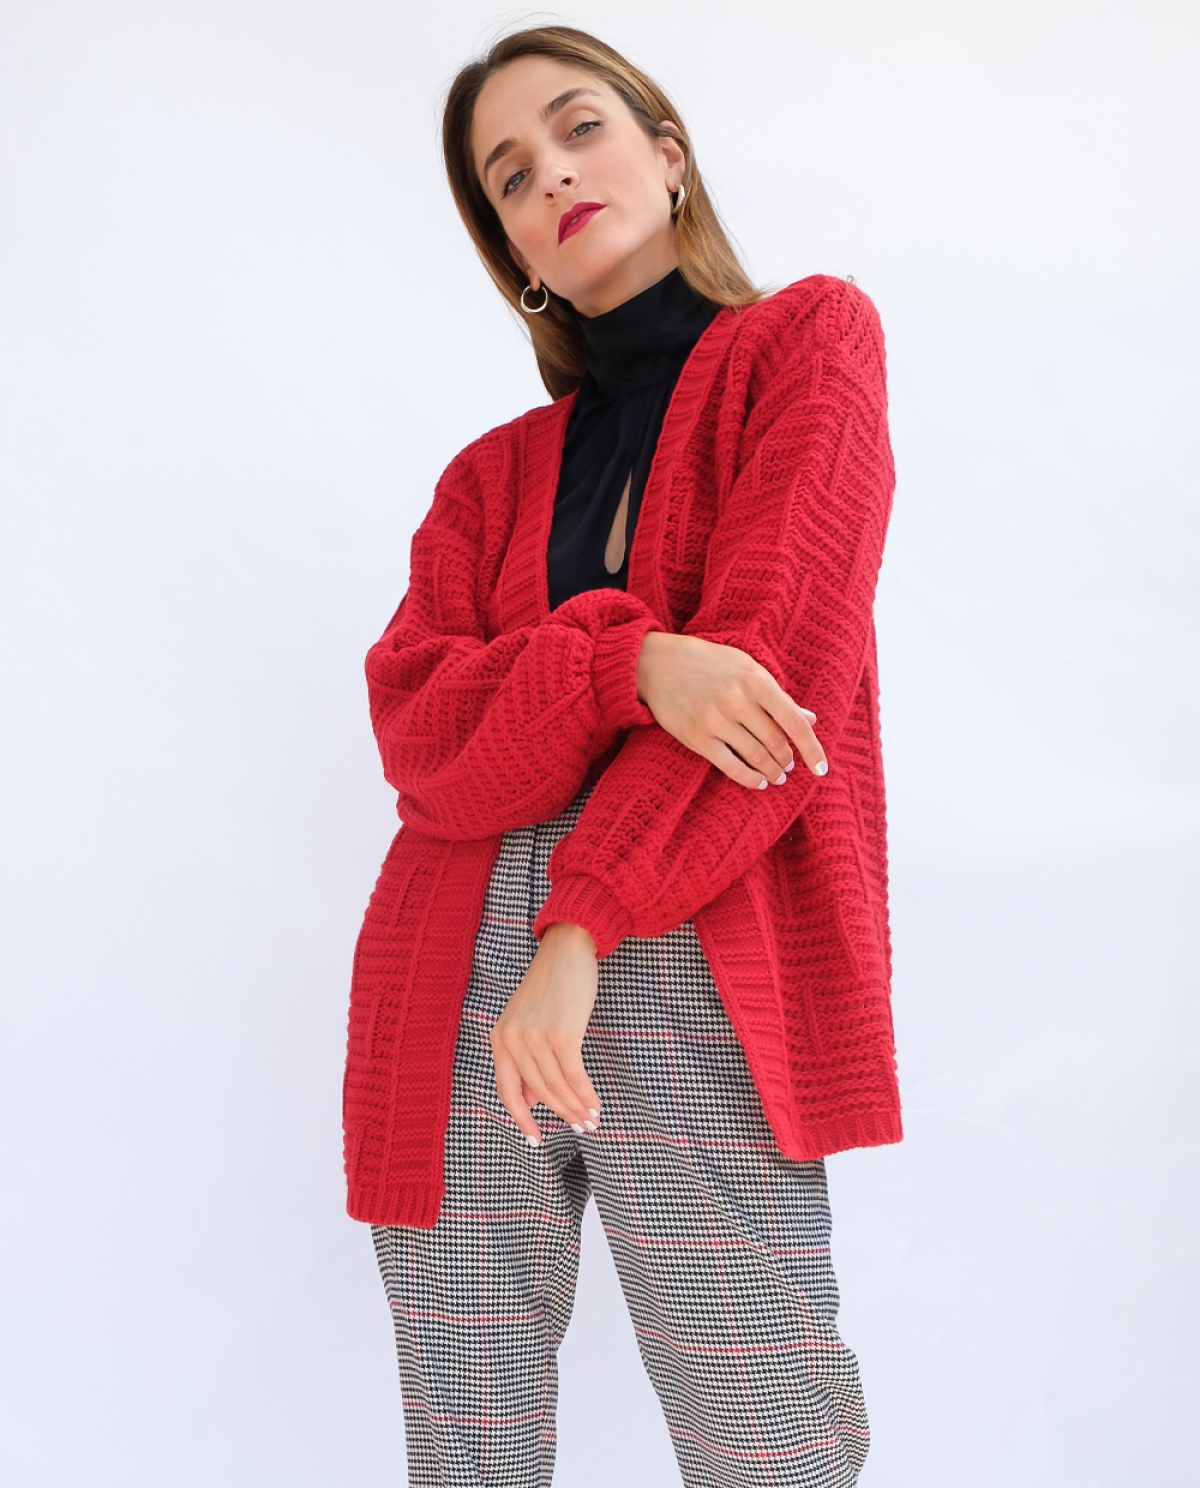 Vivid Red Kntitted Cardigan